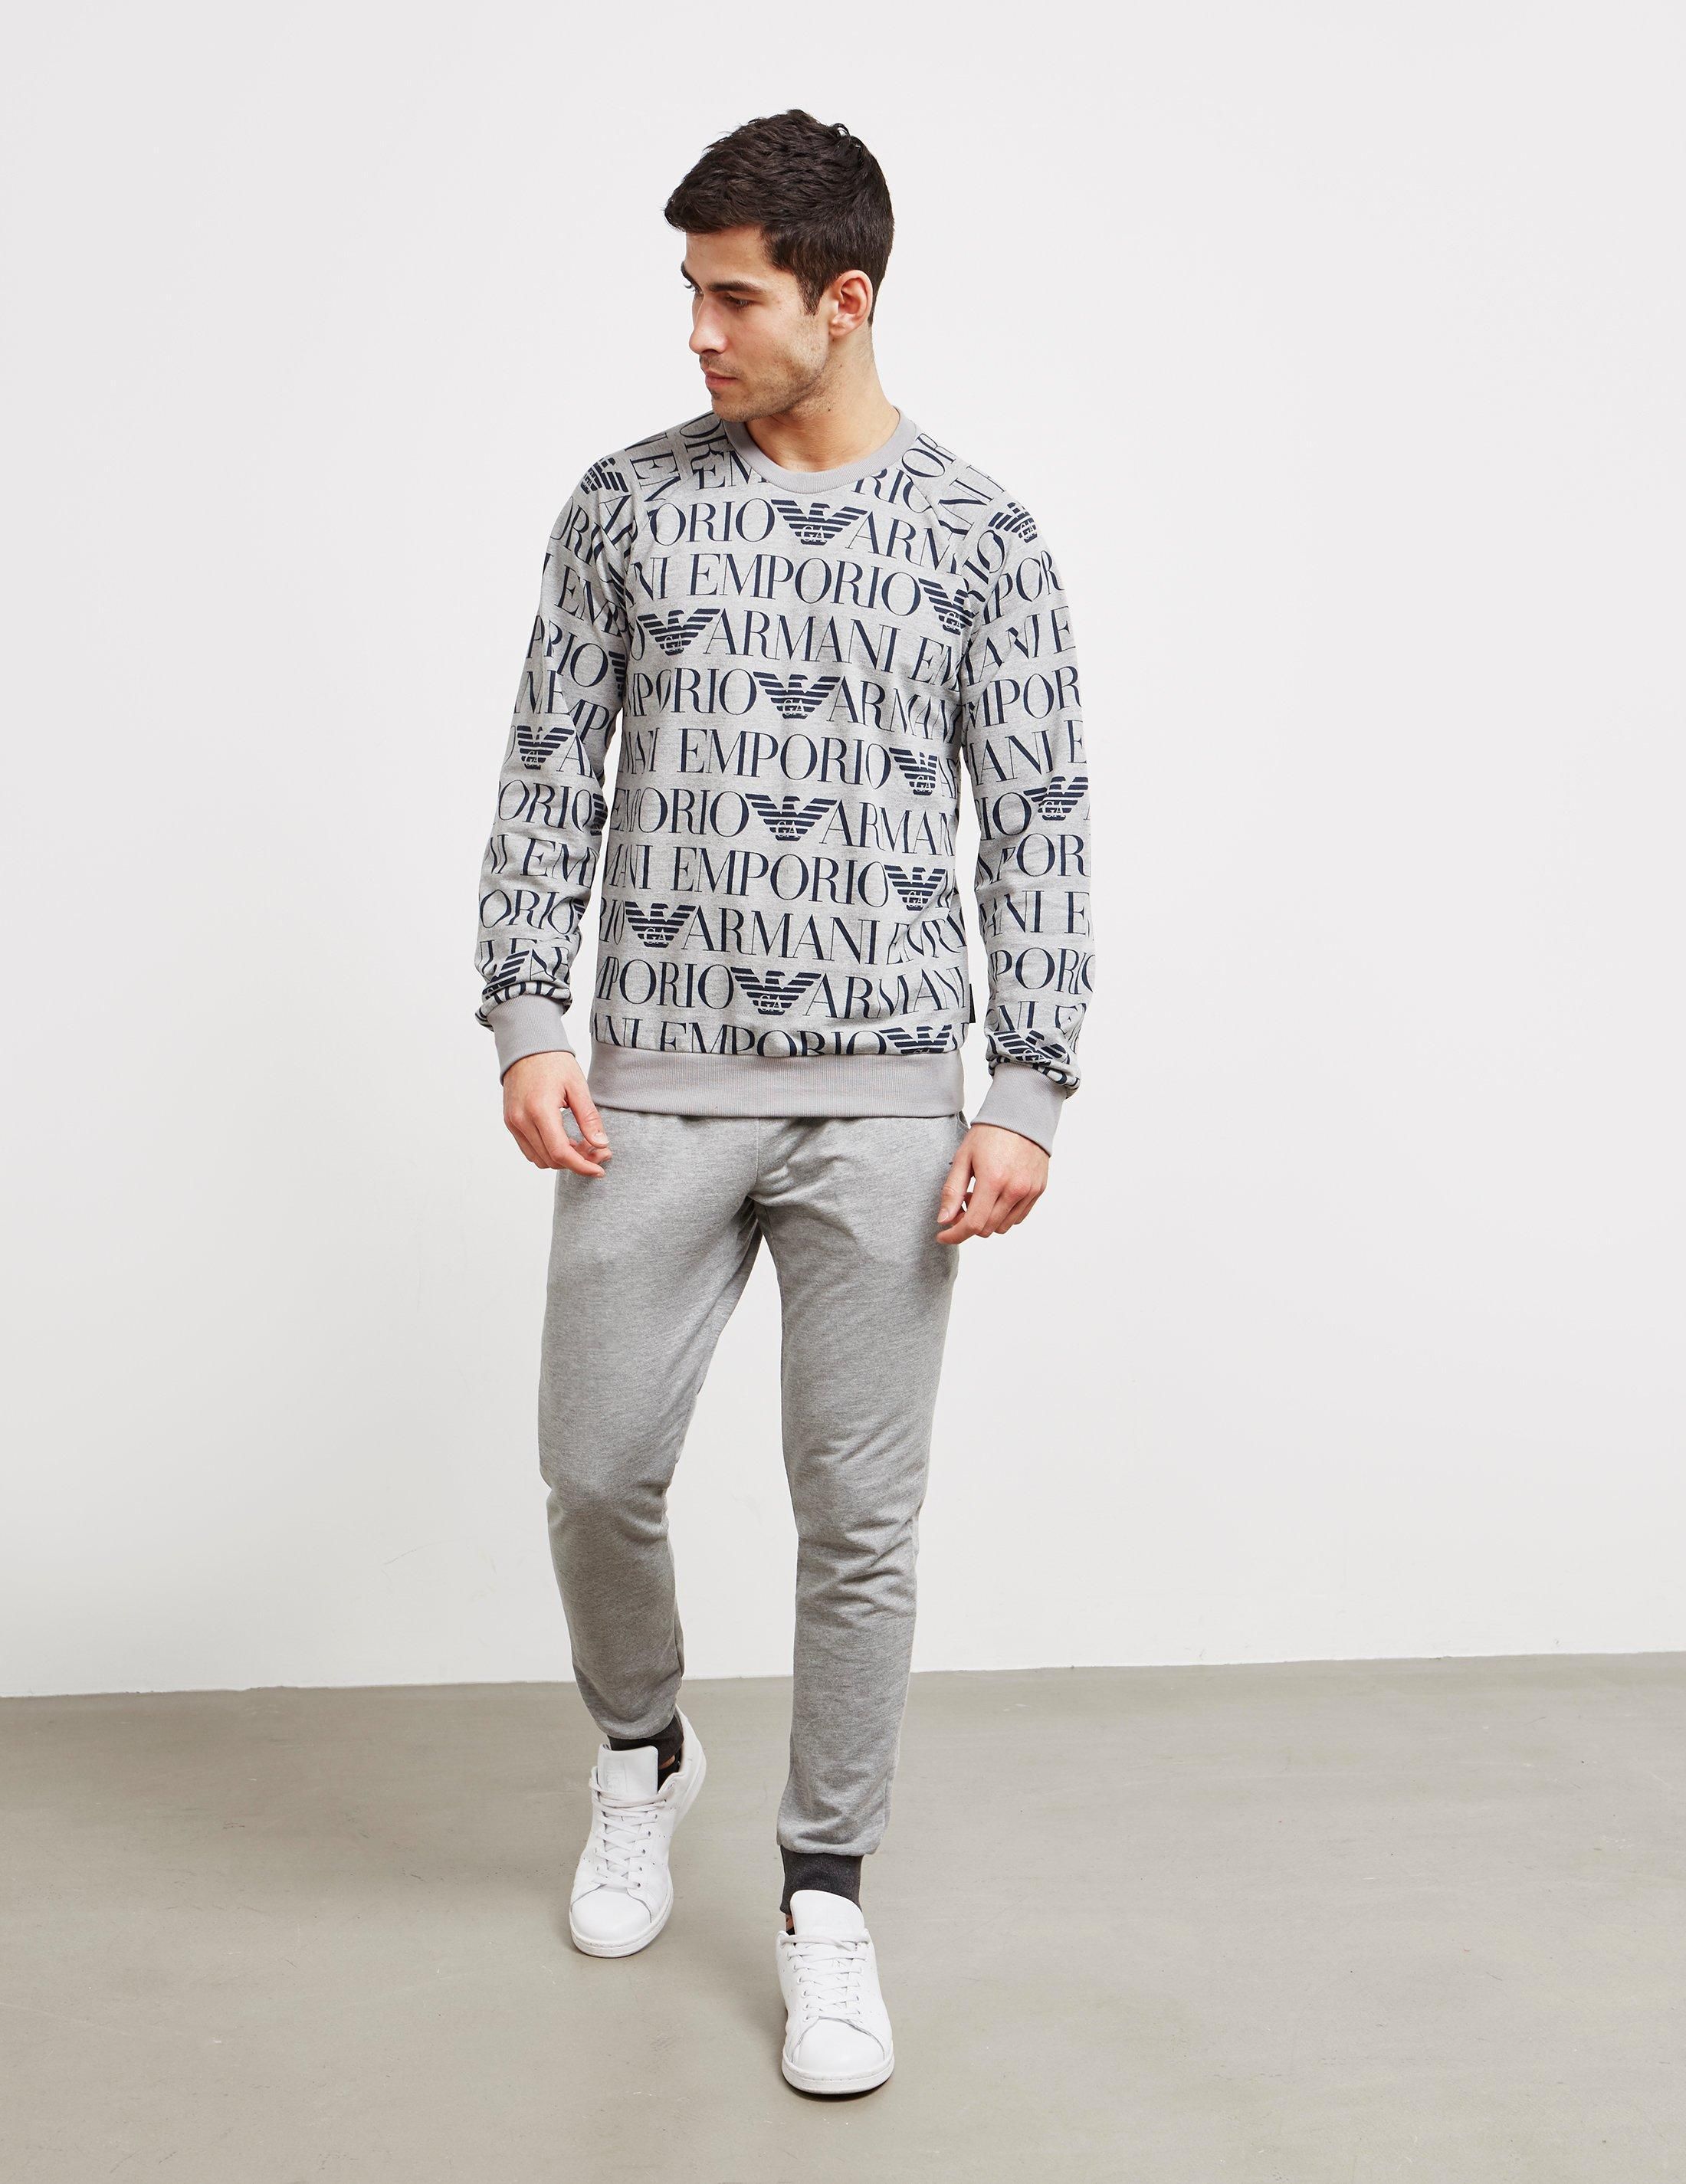 39b15b7e549 Lyst - Emporio Armani Logo Mania Sweatshirt in Gray for Men